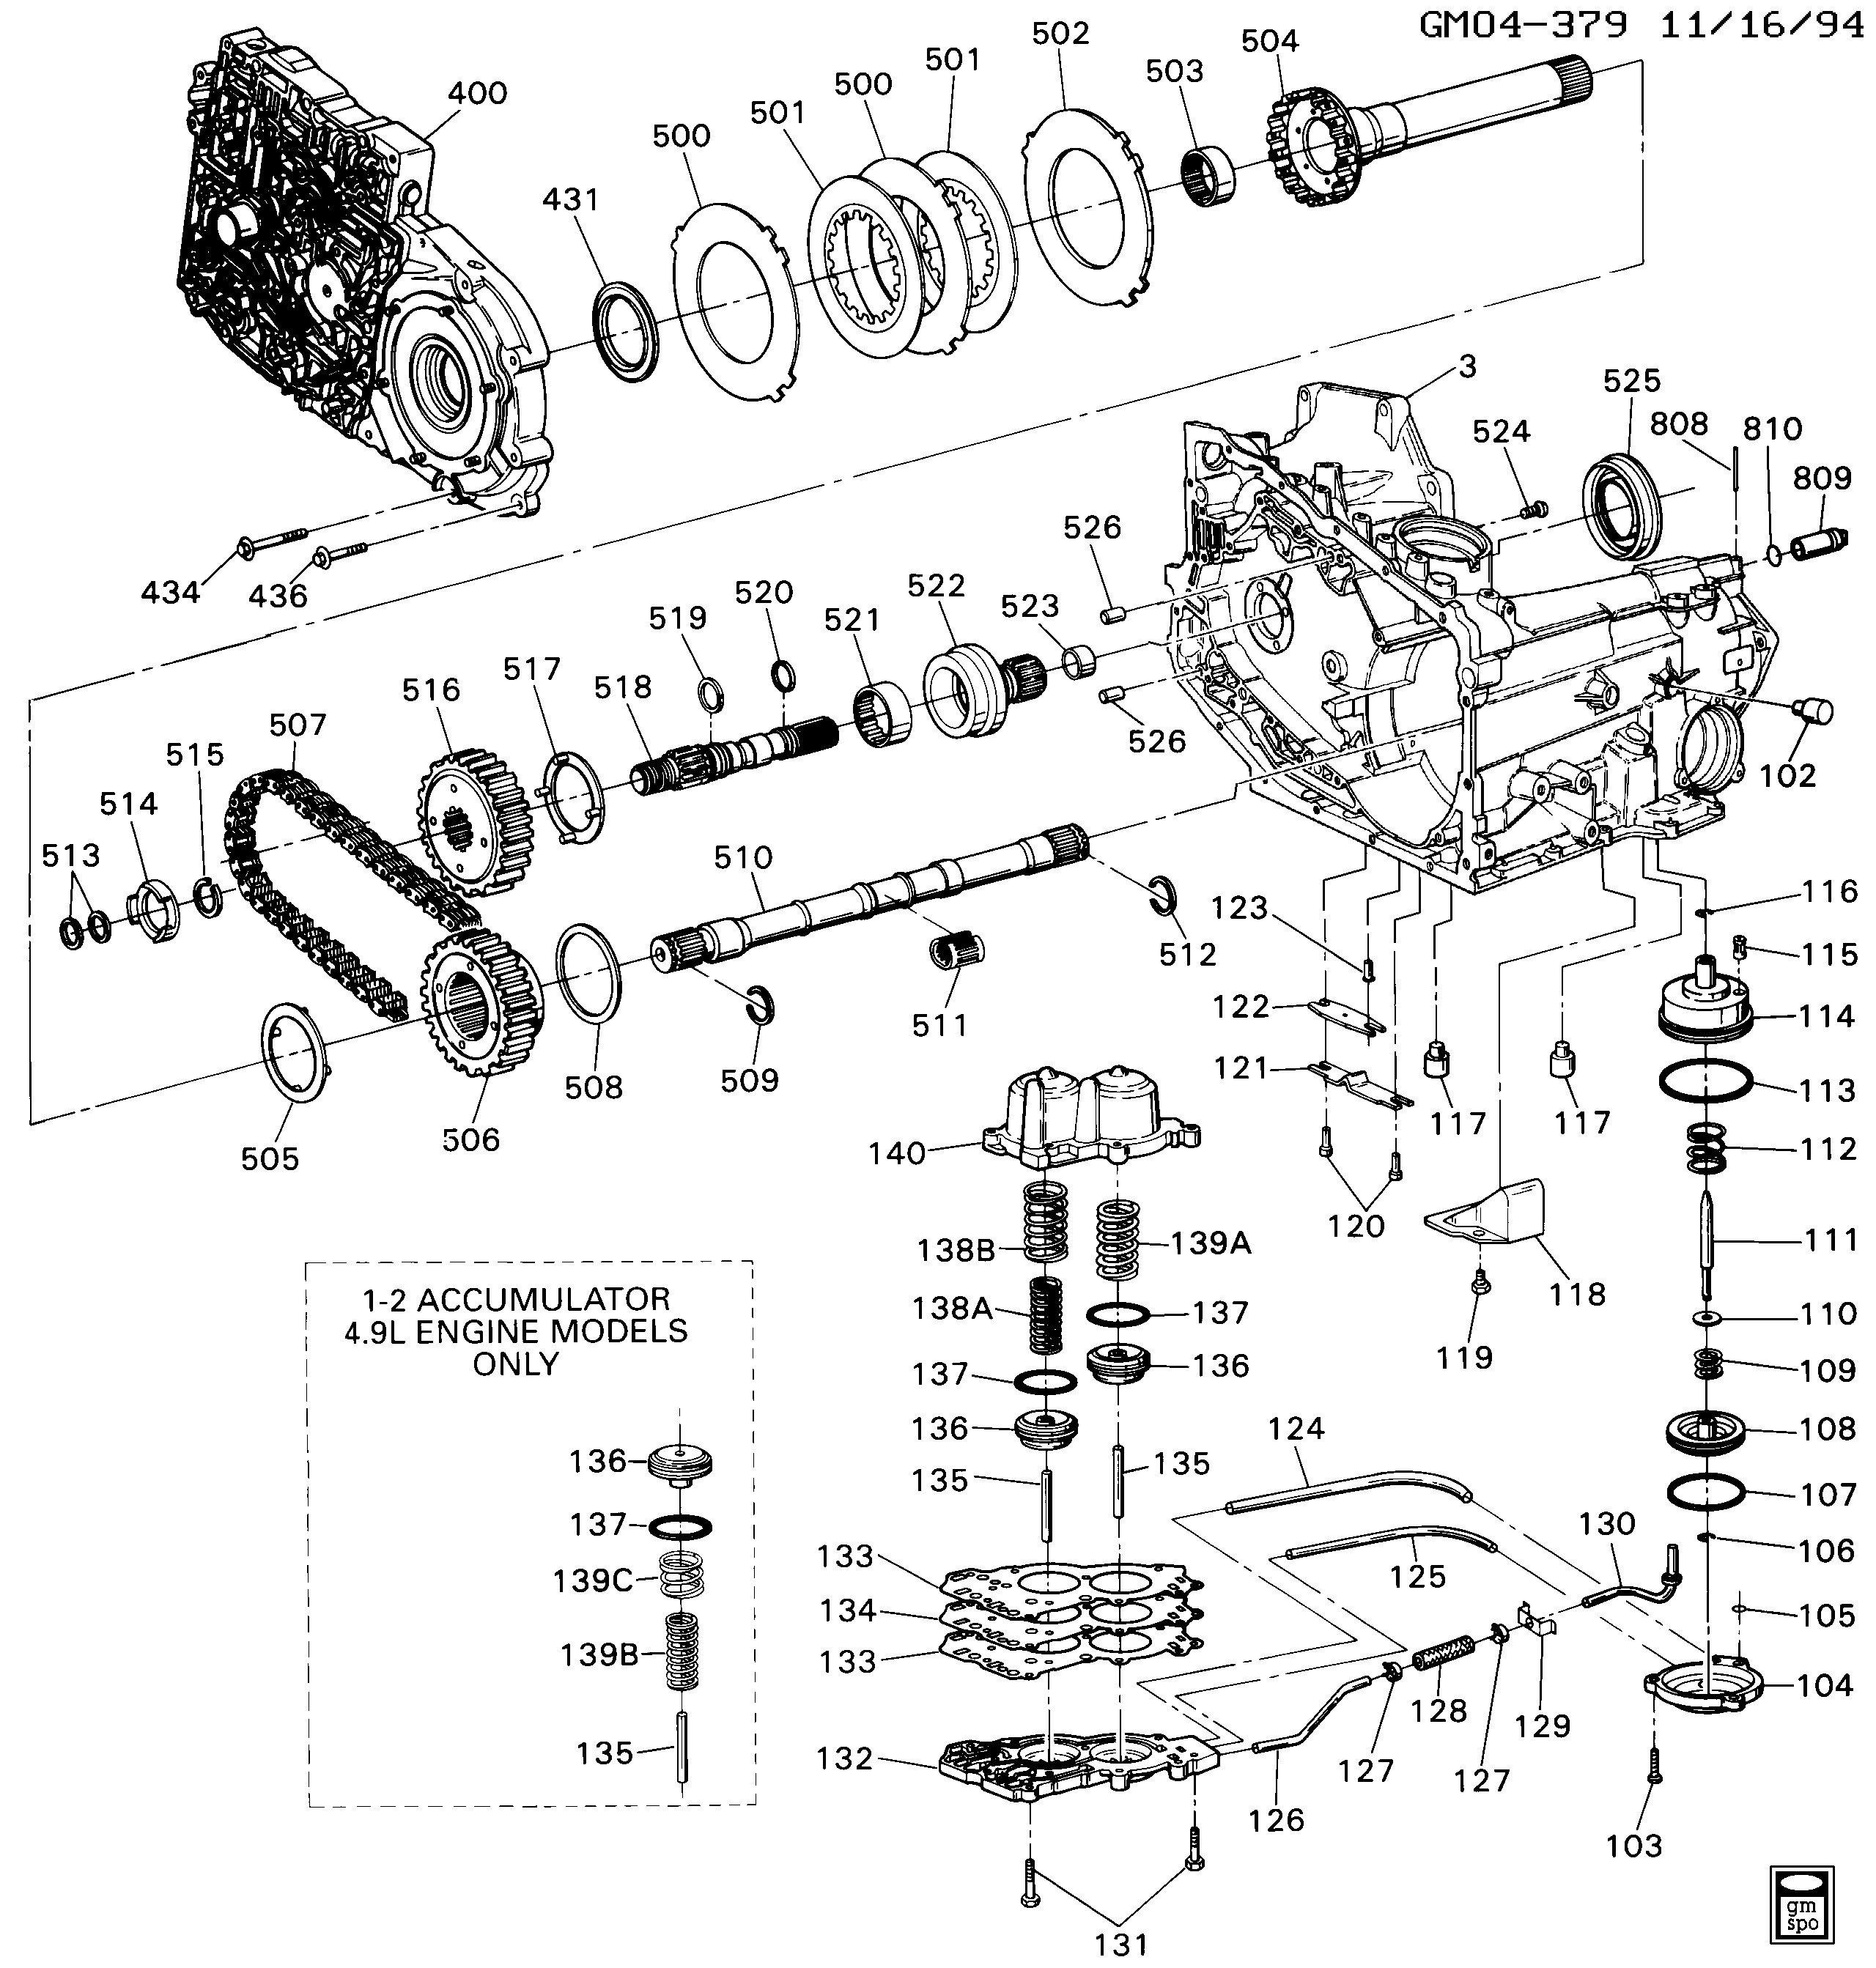 4t60 transmission diagram